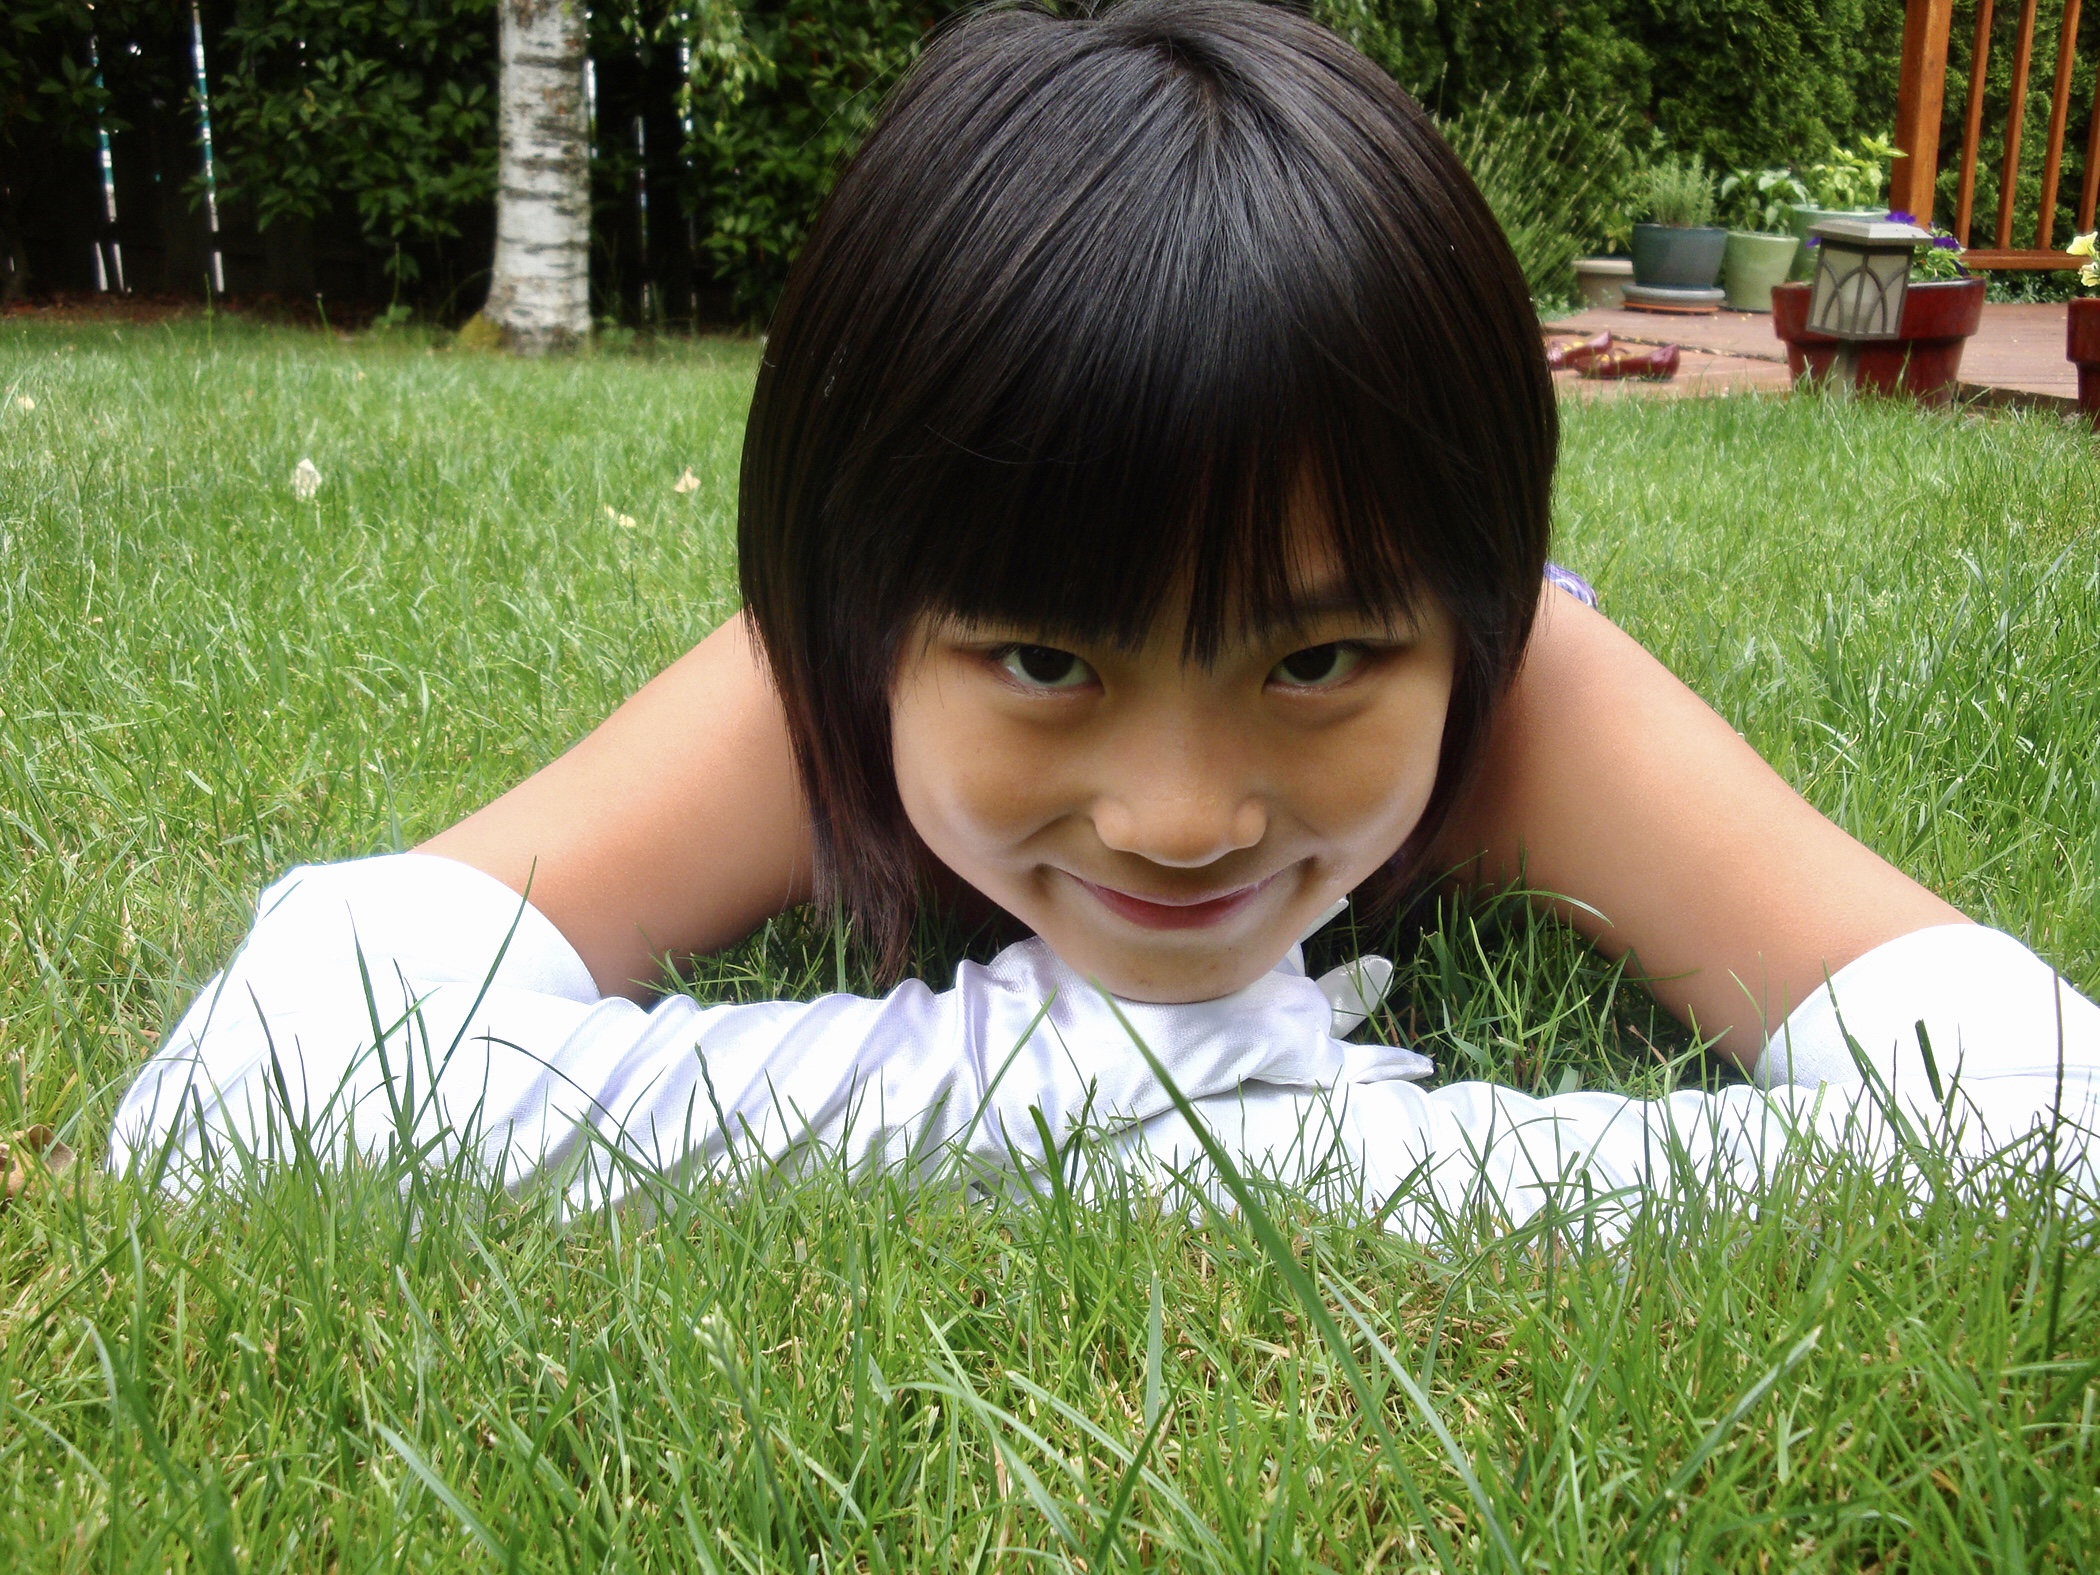 Sydney In The Grass